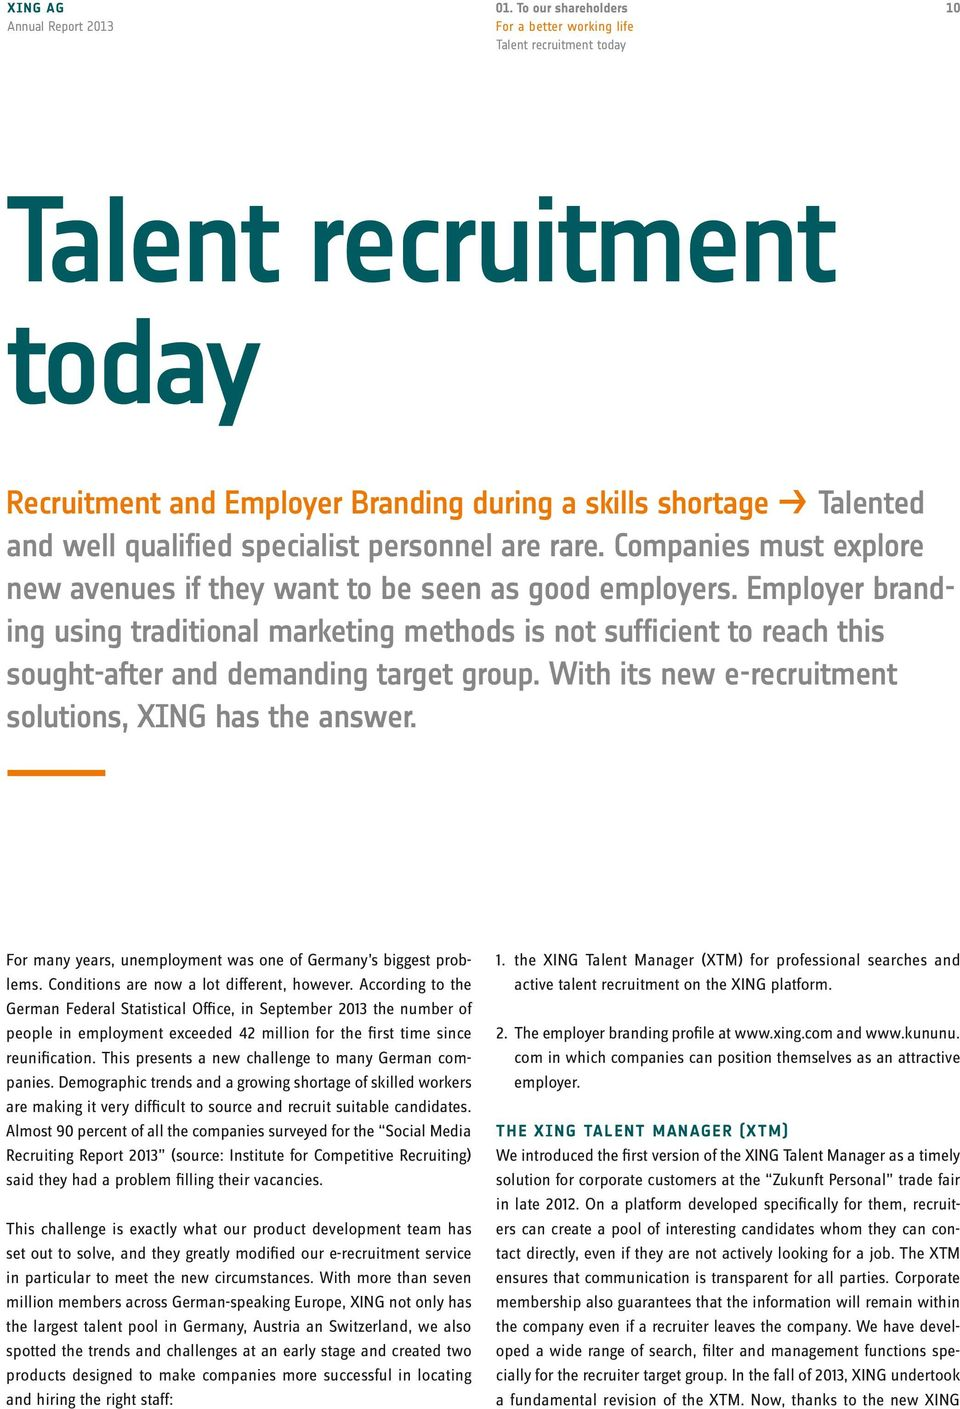 Employer branding using traditional marketing methods is not sufficient to reach this sought-after and demanding target group. With its new e-recruitment solutions, XING has the answer.